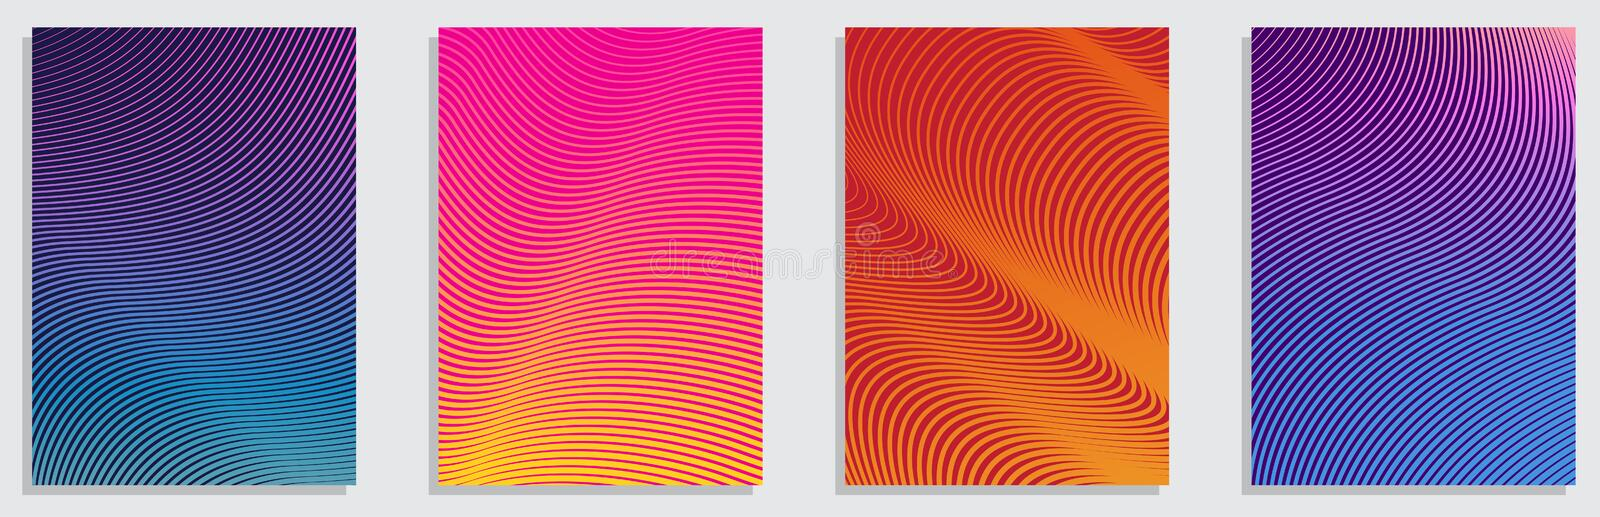 Minimal covers design. Colorful halftone gradients.background modern template design for web. Cool gradients. Future geometric royalty free illustration